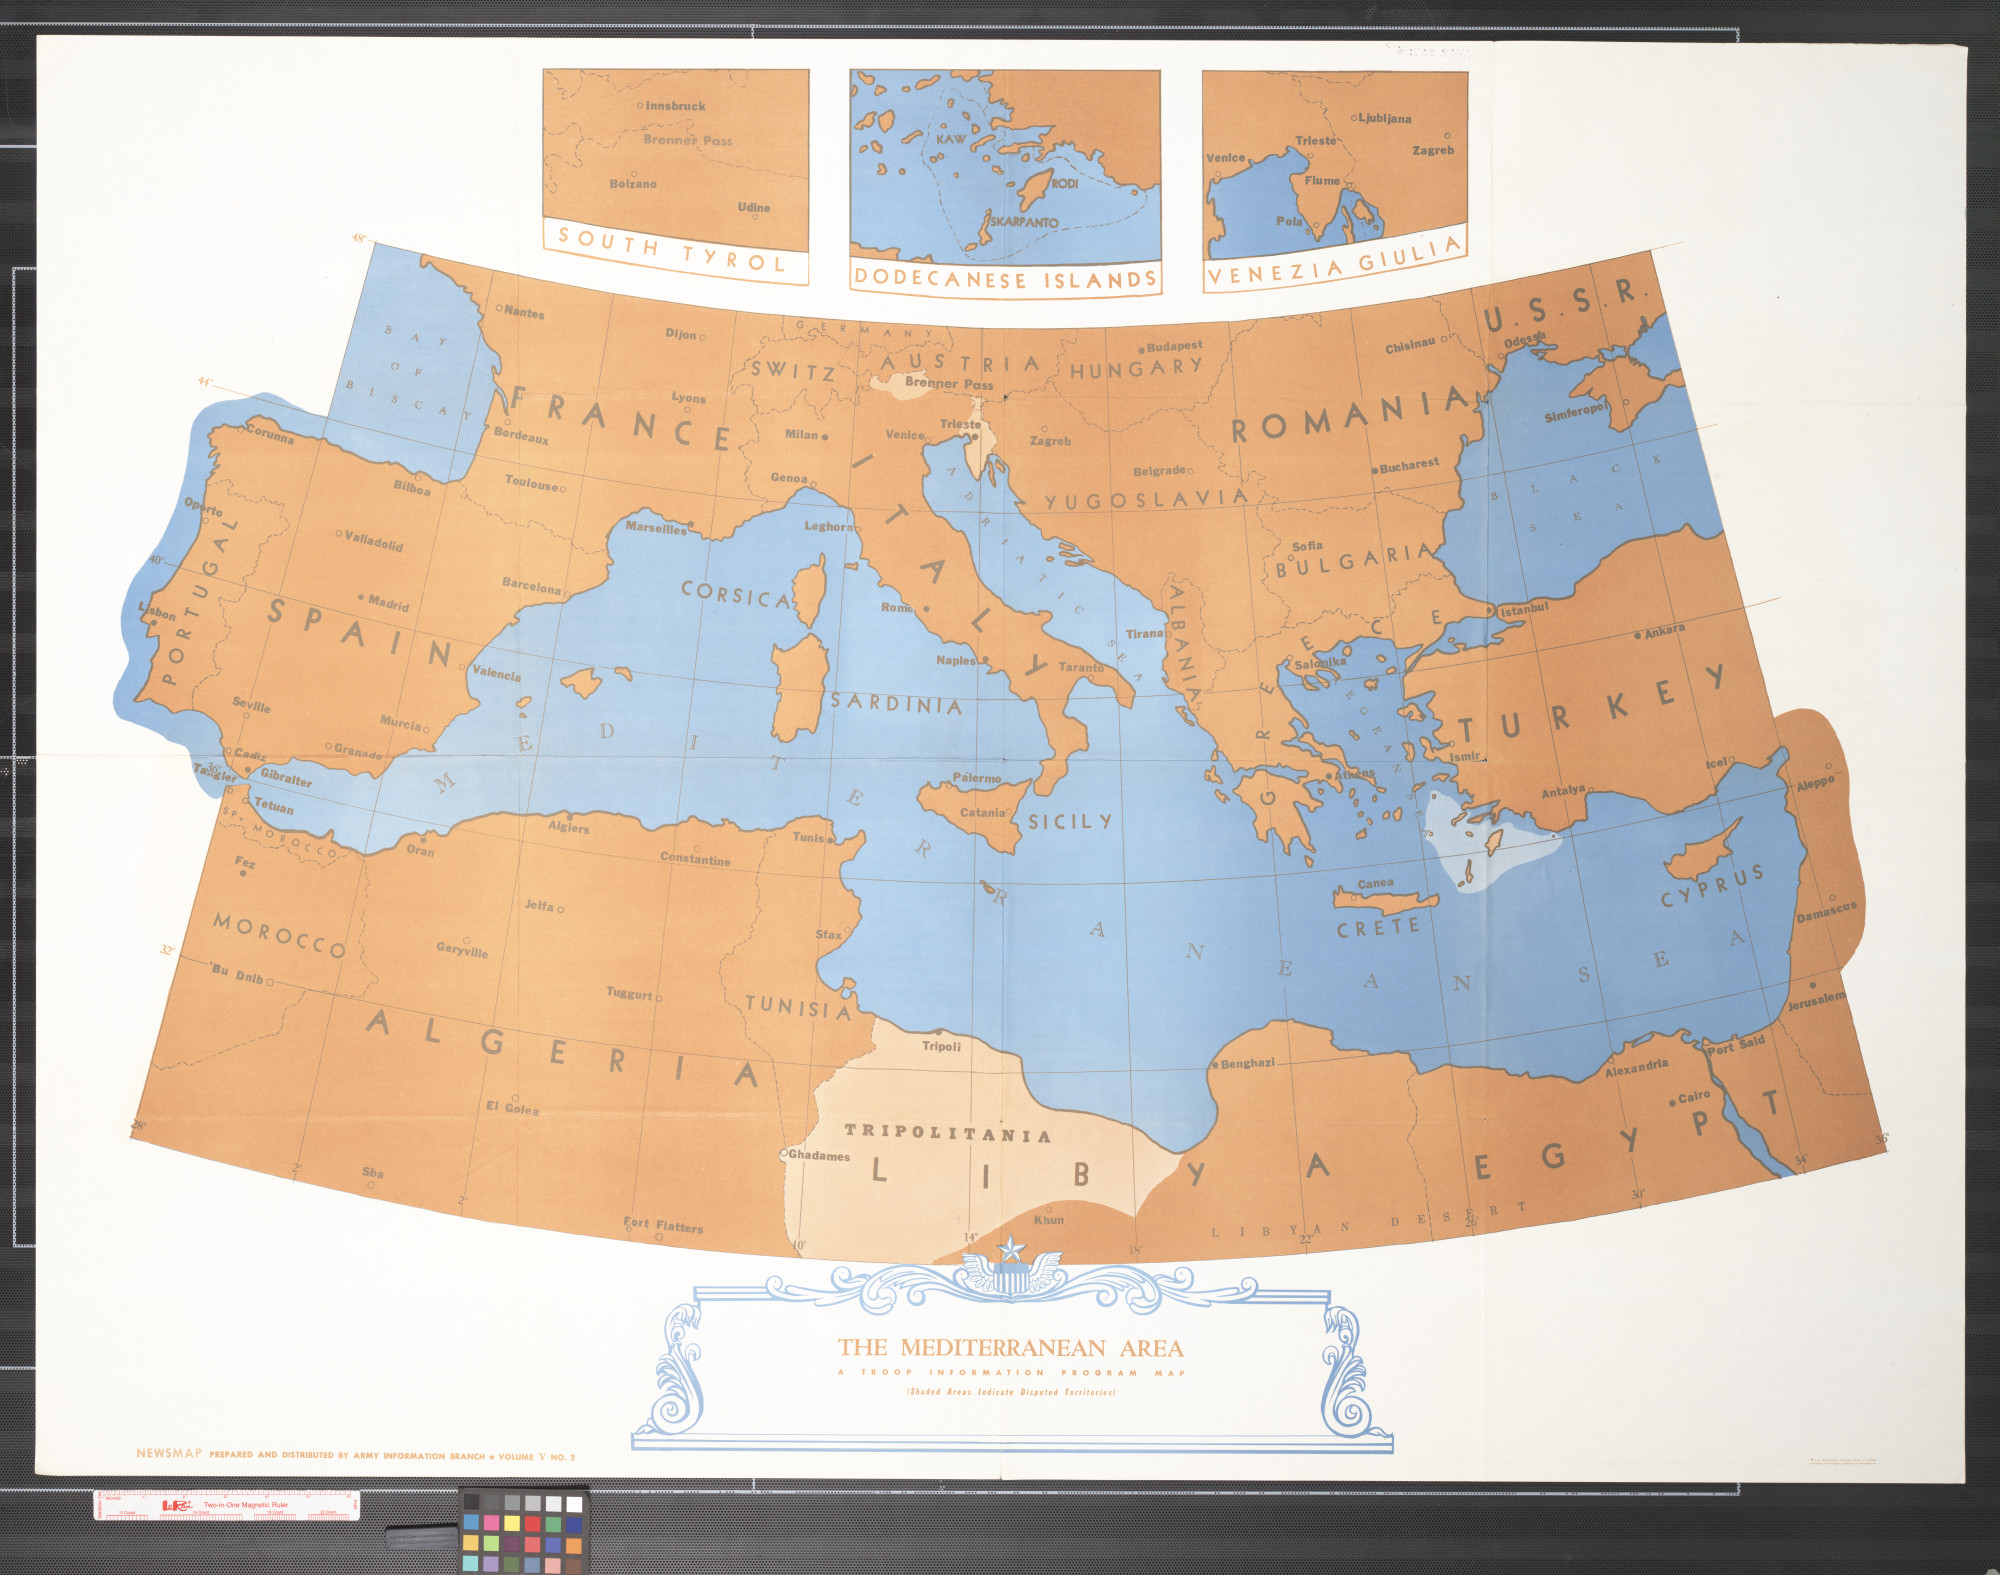 Newsmap : The Mediterranean area : a troop information program map                                                                                                      [Sequence #]: 1 of 2